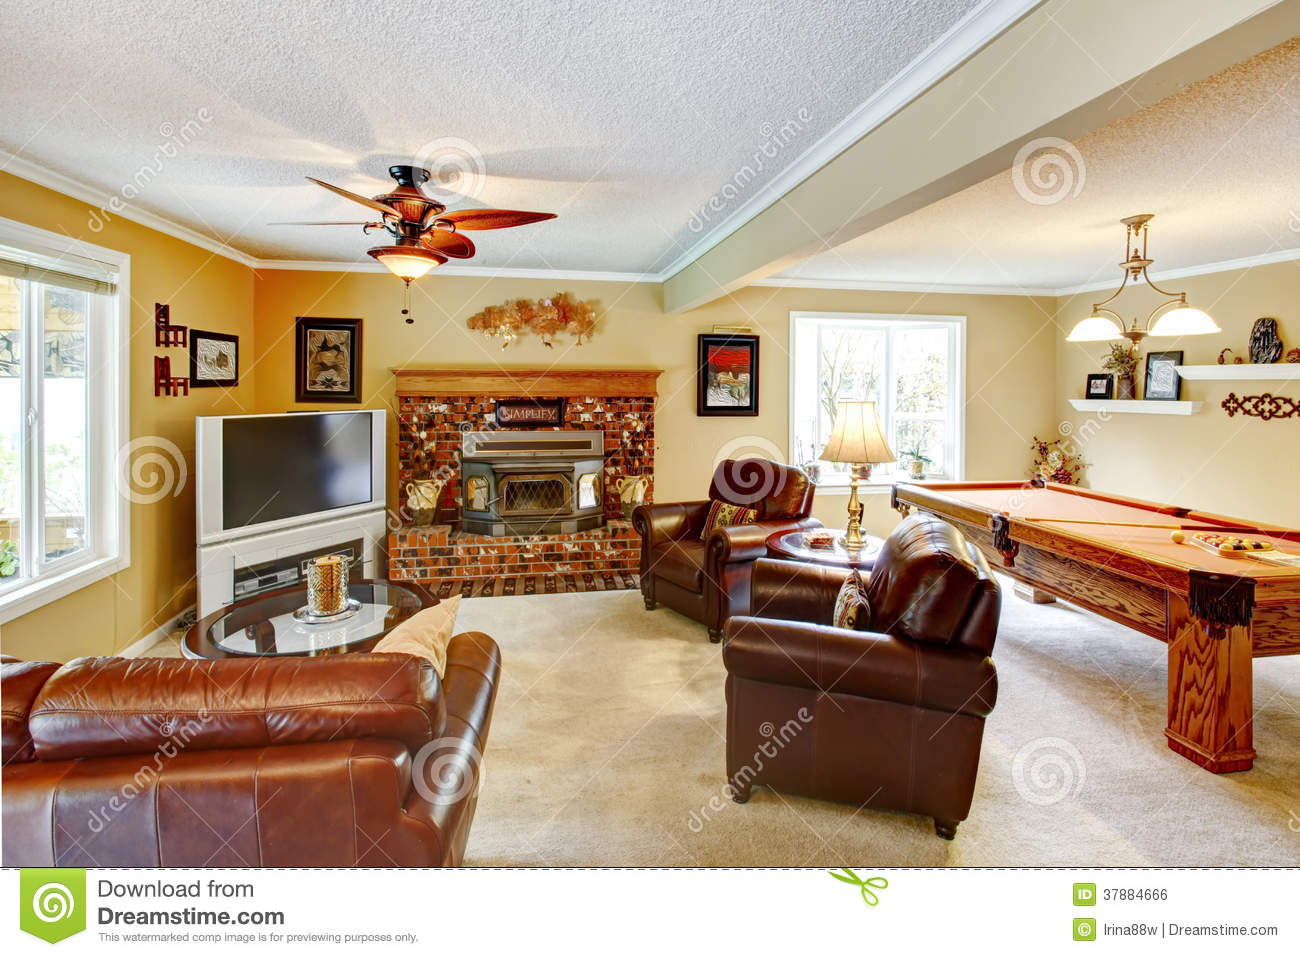 Elegant Living Room With Pool Table Stock Photo Image Of Beams Estate 37884666